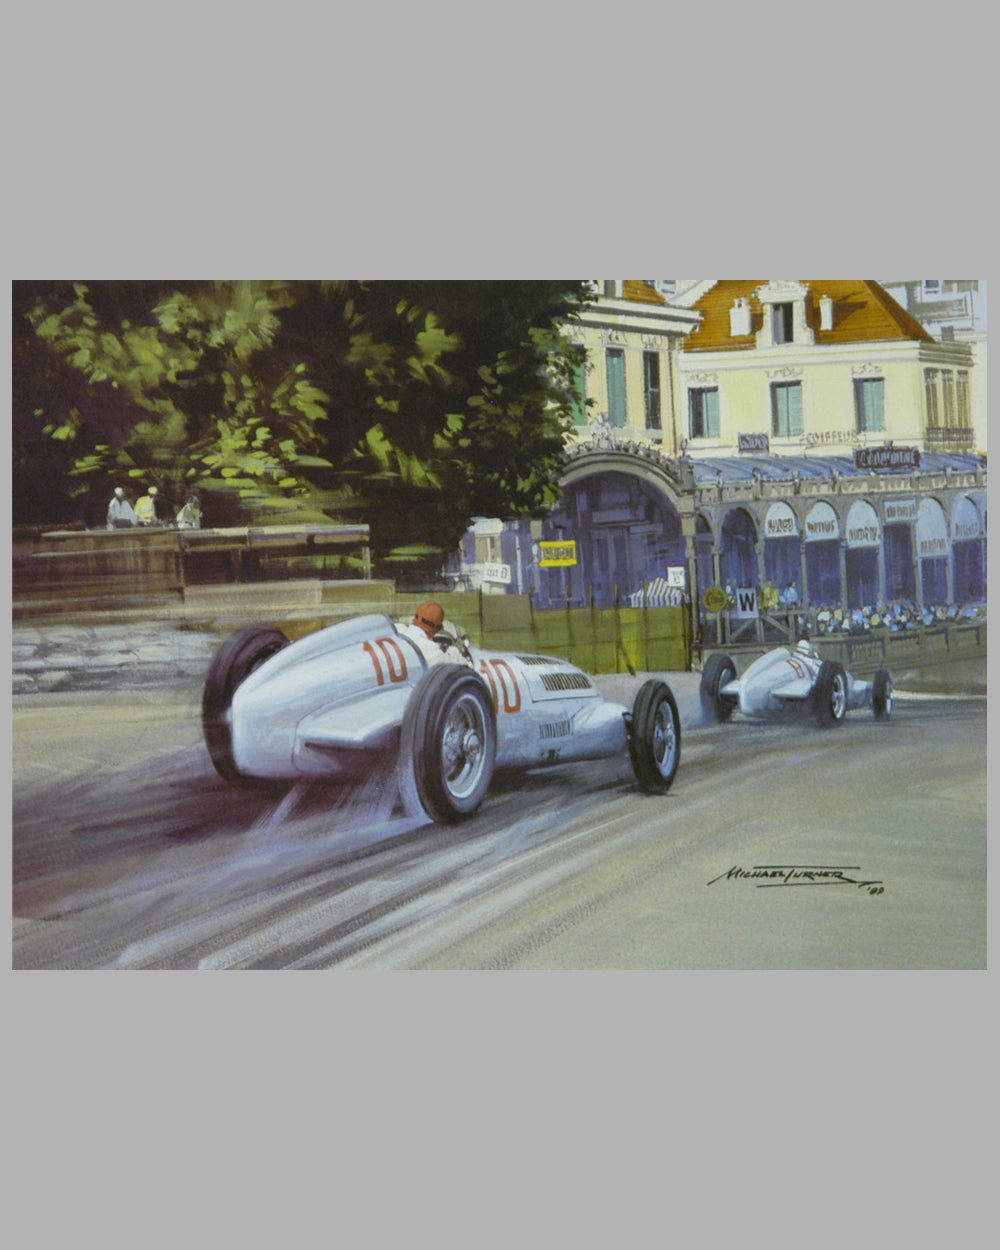 G.P. of Monaco 1937 print by Michael Turner